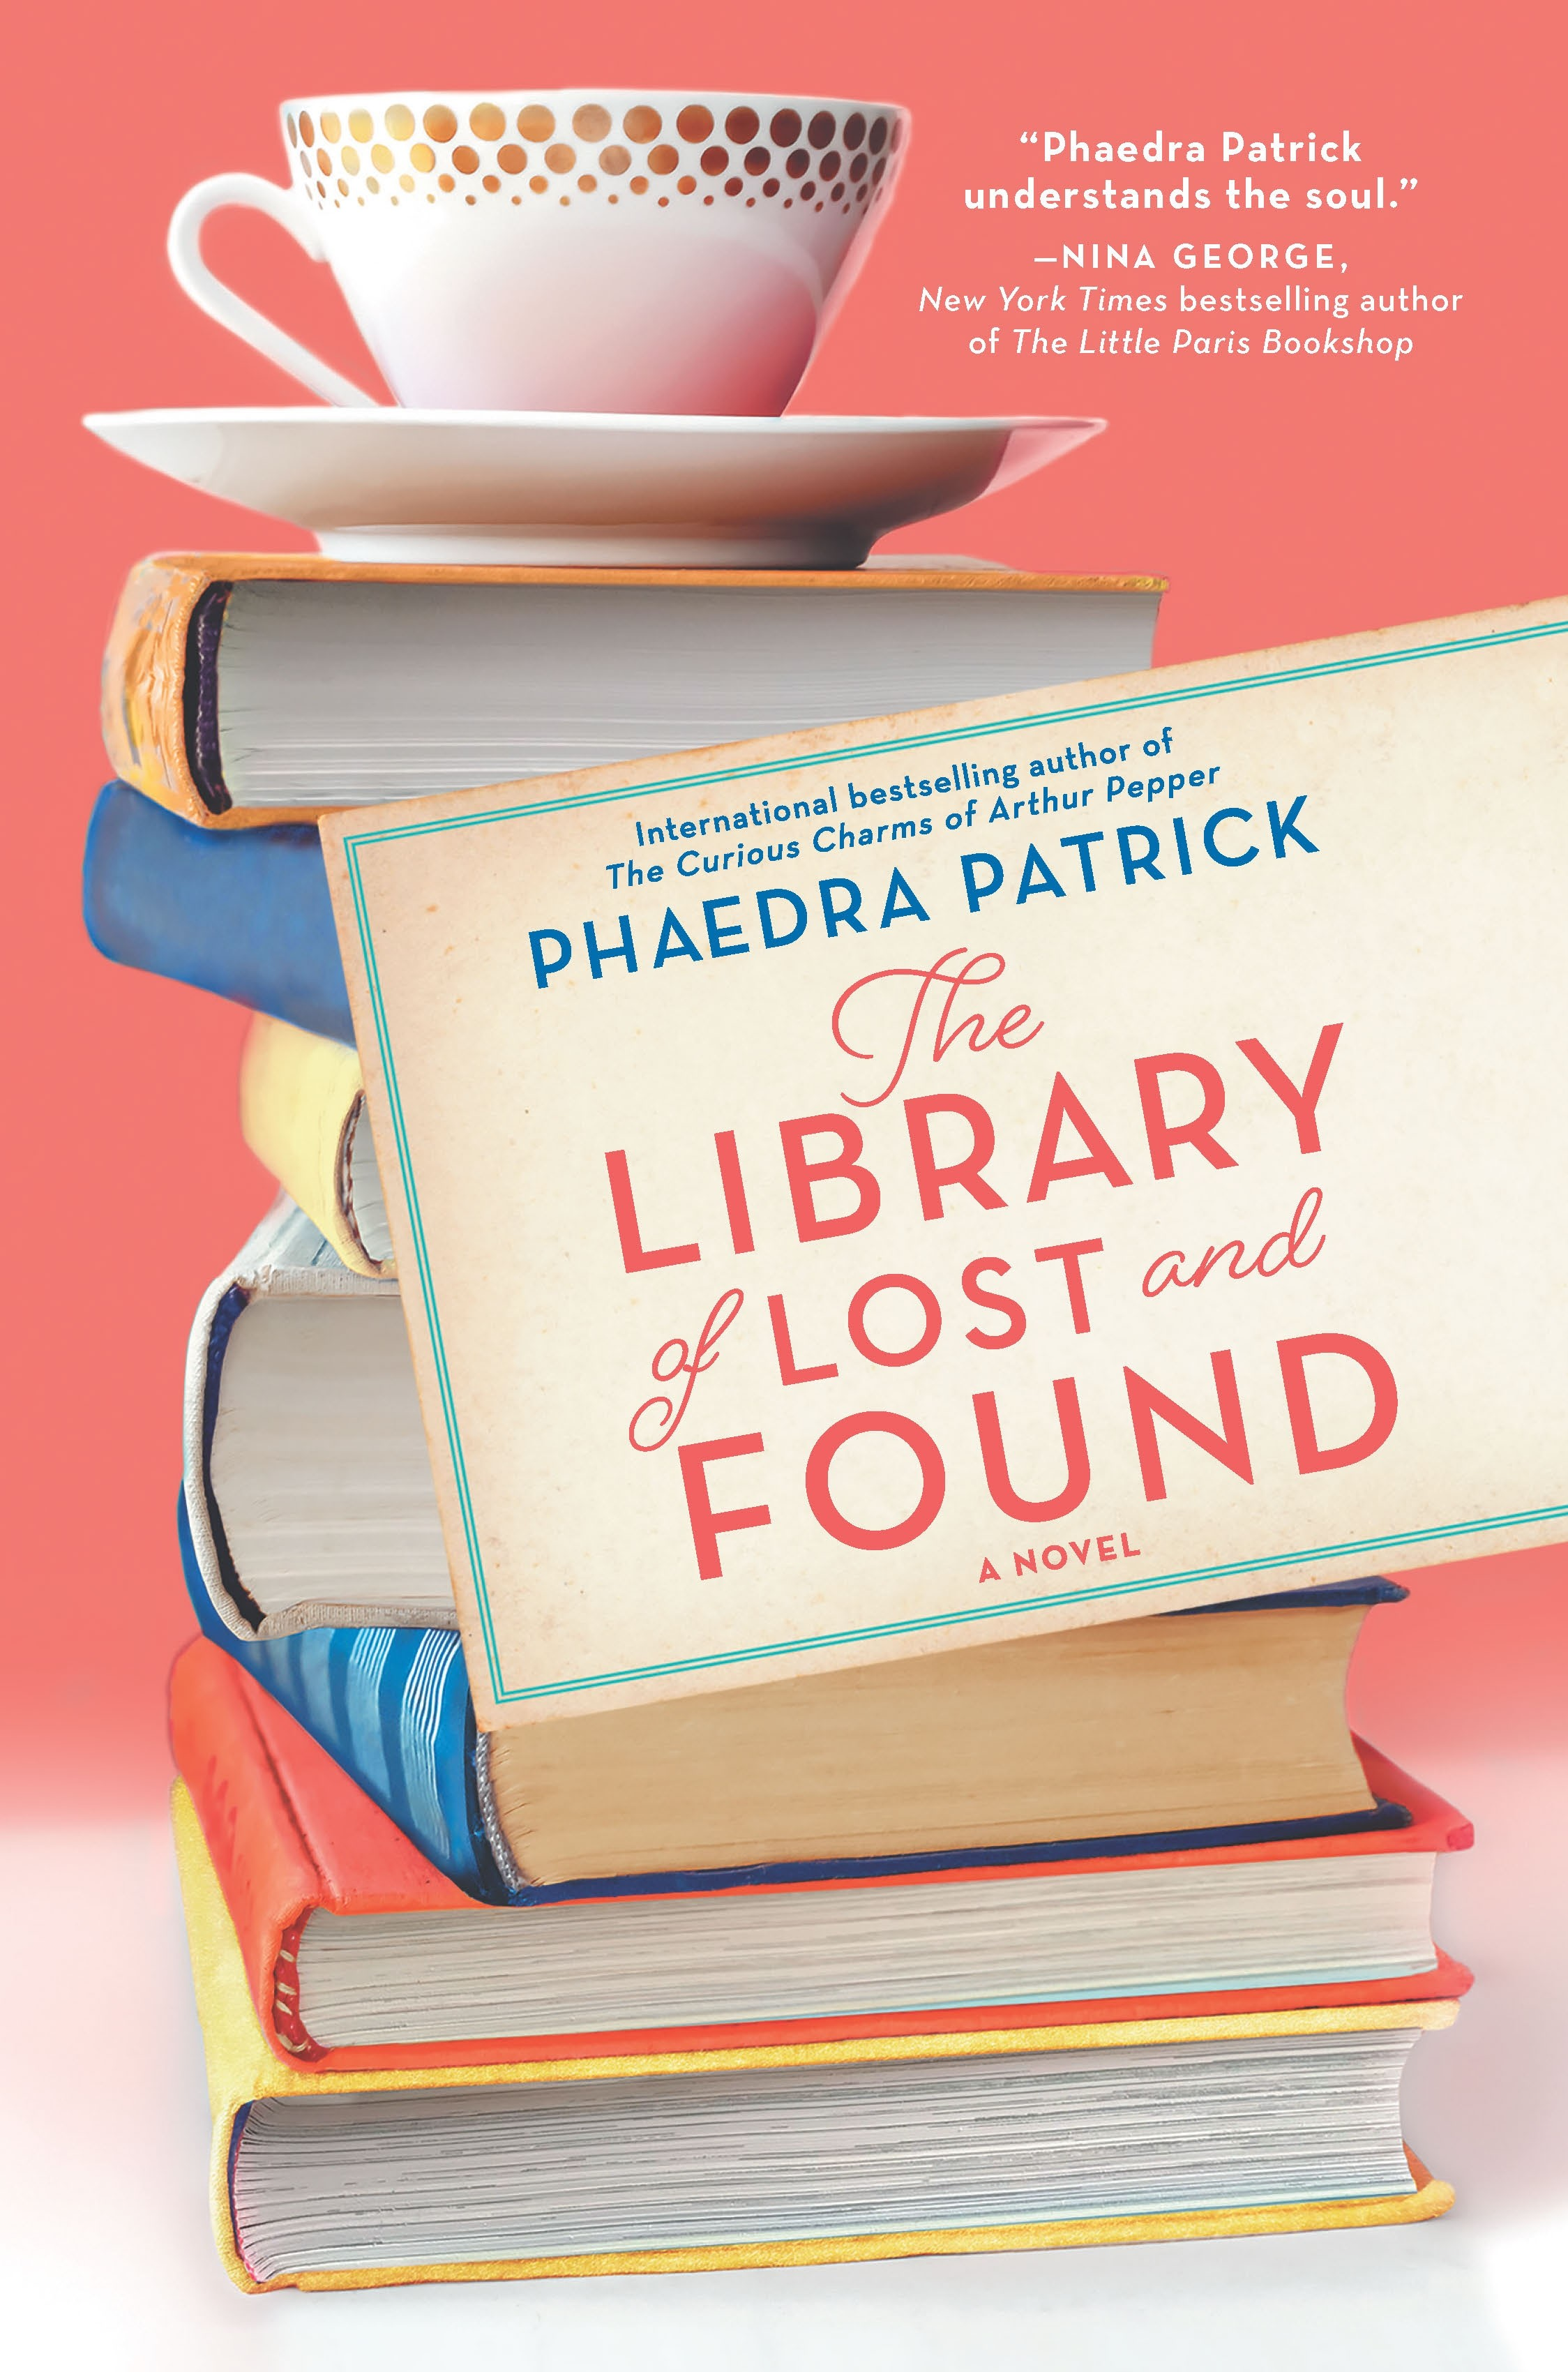 The Library of Lost and Found A Novel